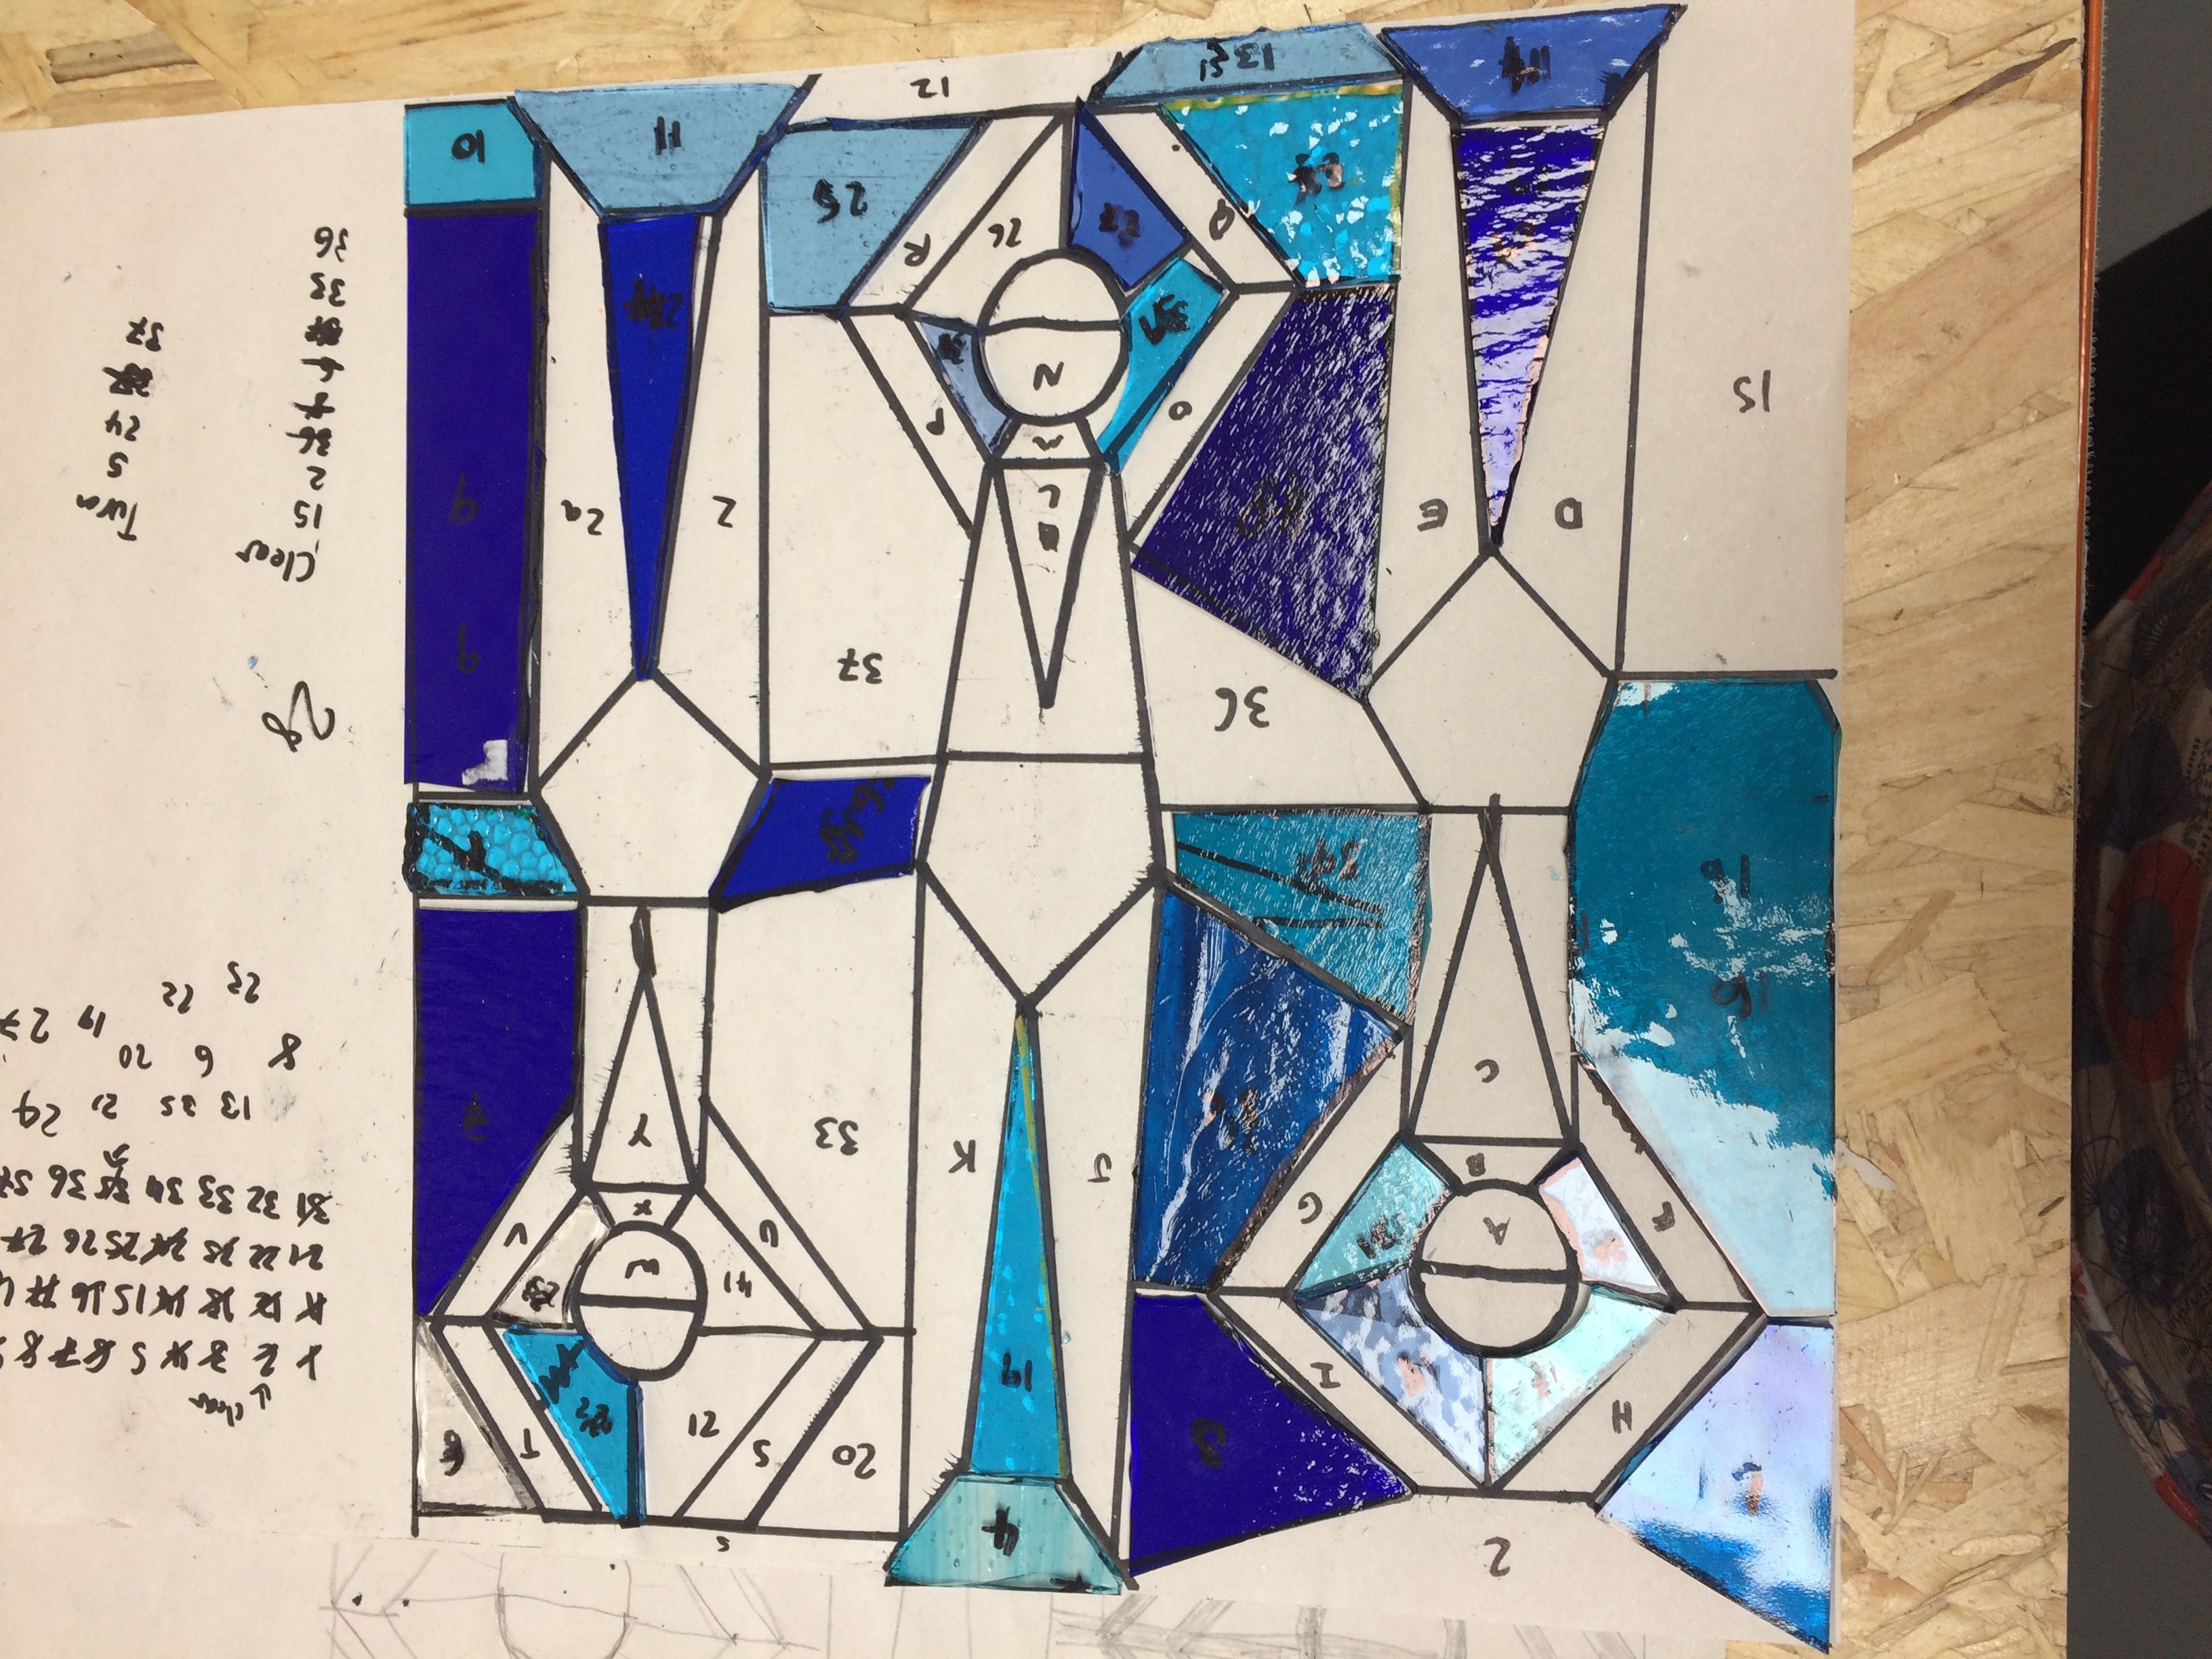 Making a stained glass window with Jill Fordham at Cambridge Art Makers